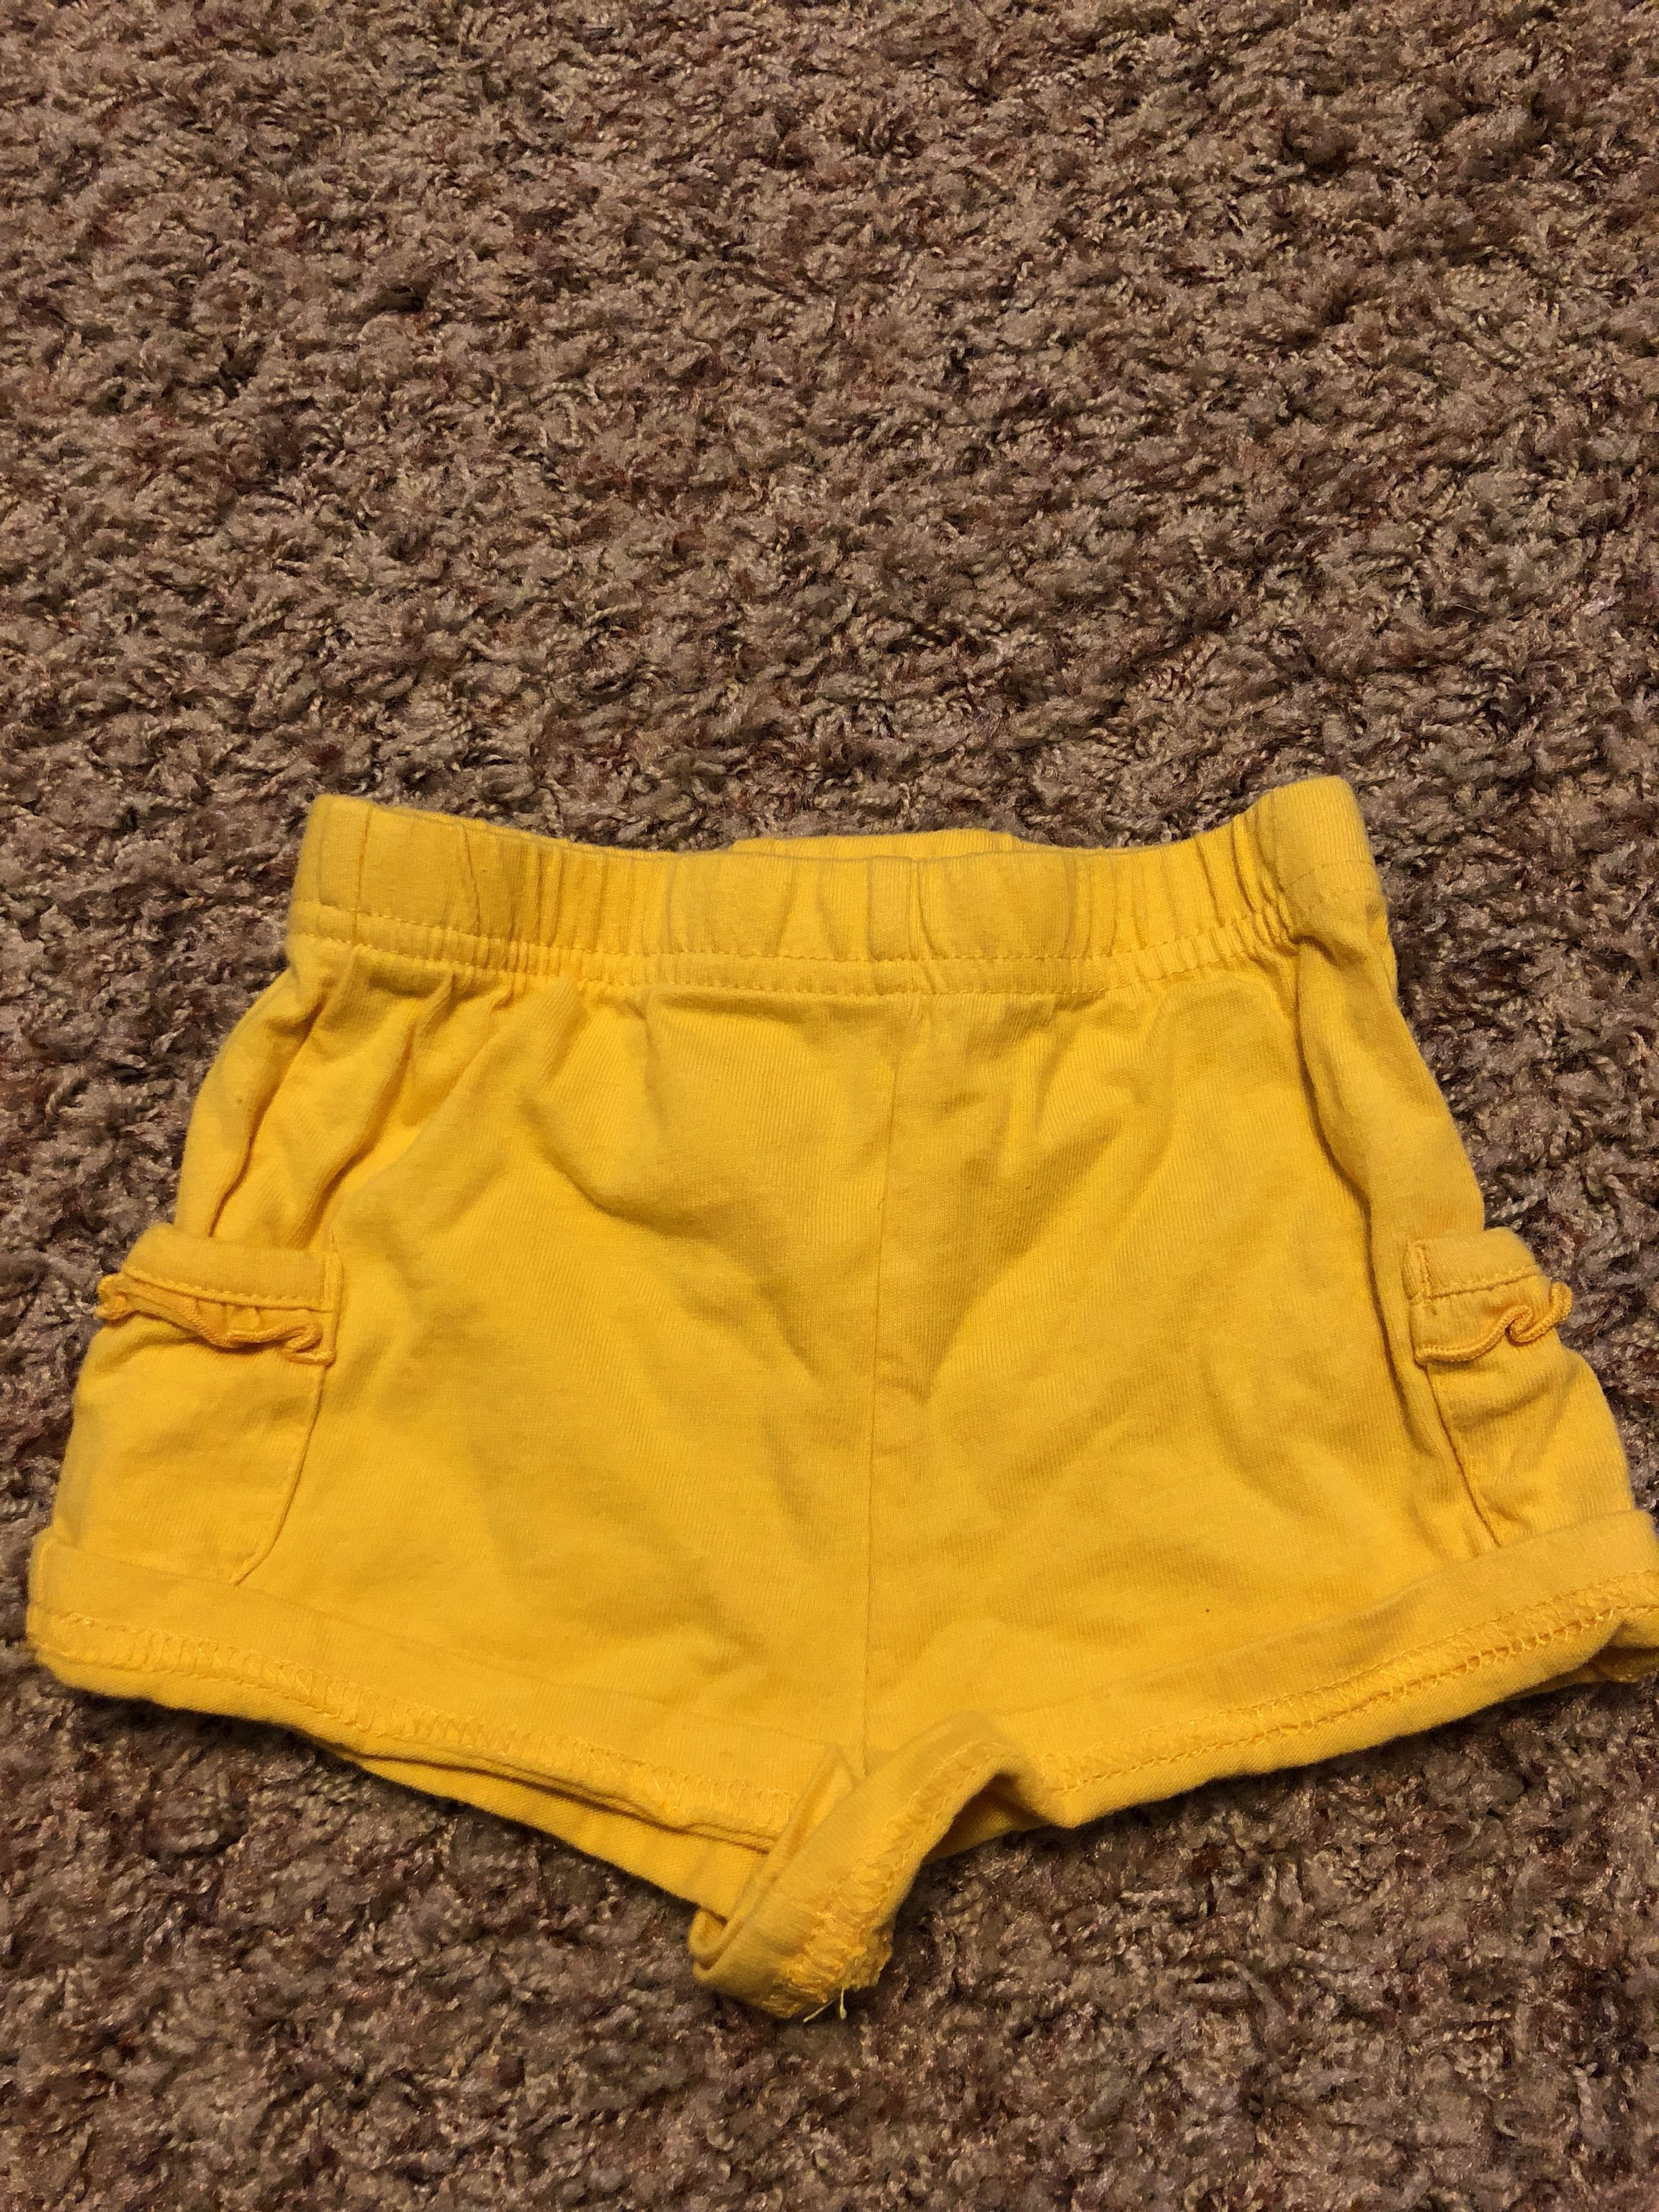 Yellow shorts size 12 months